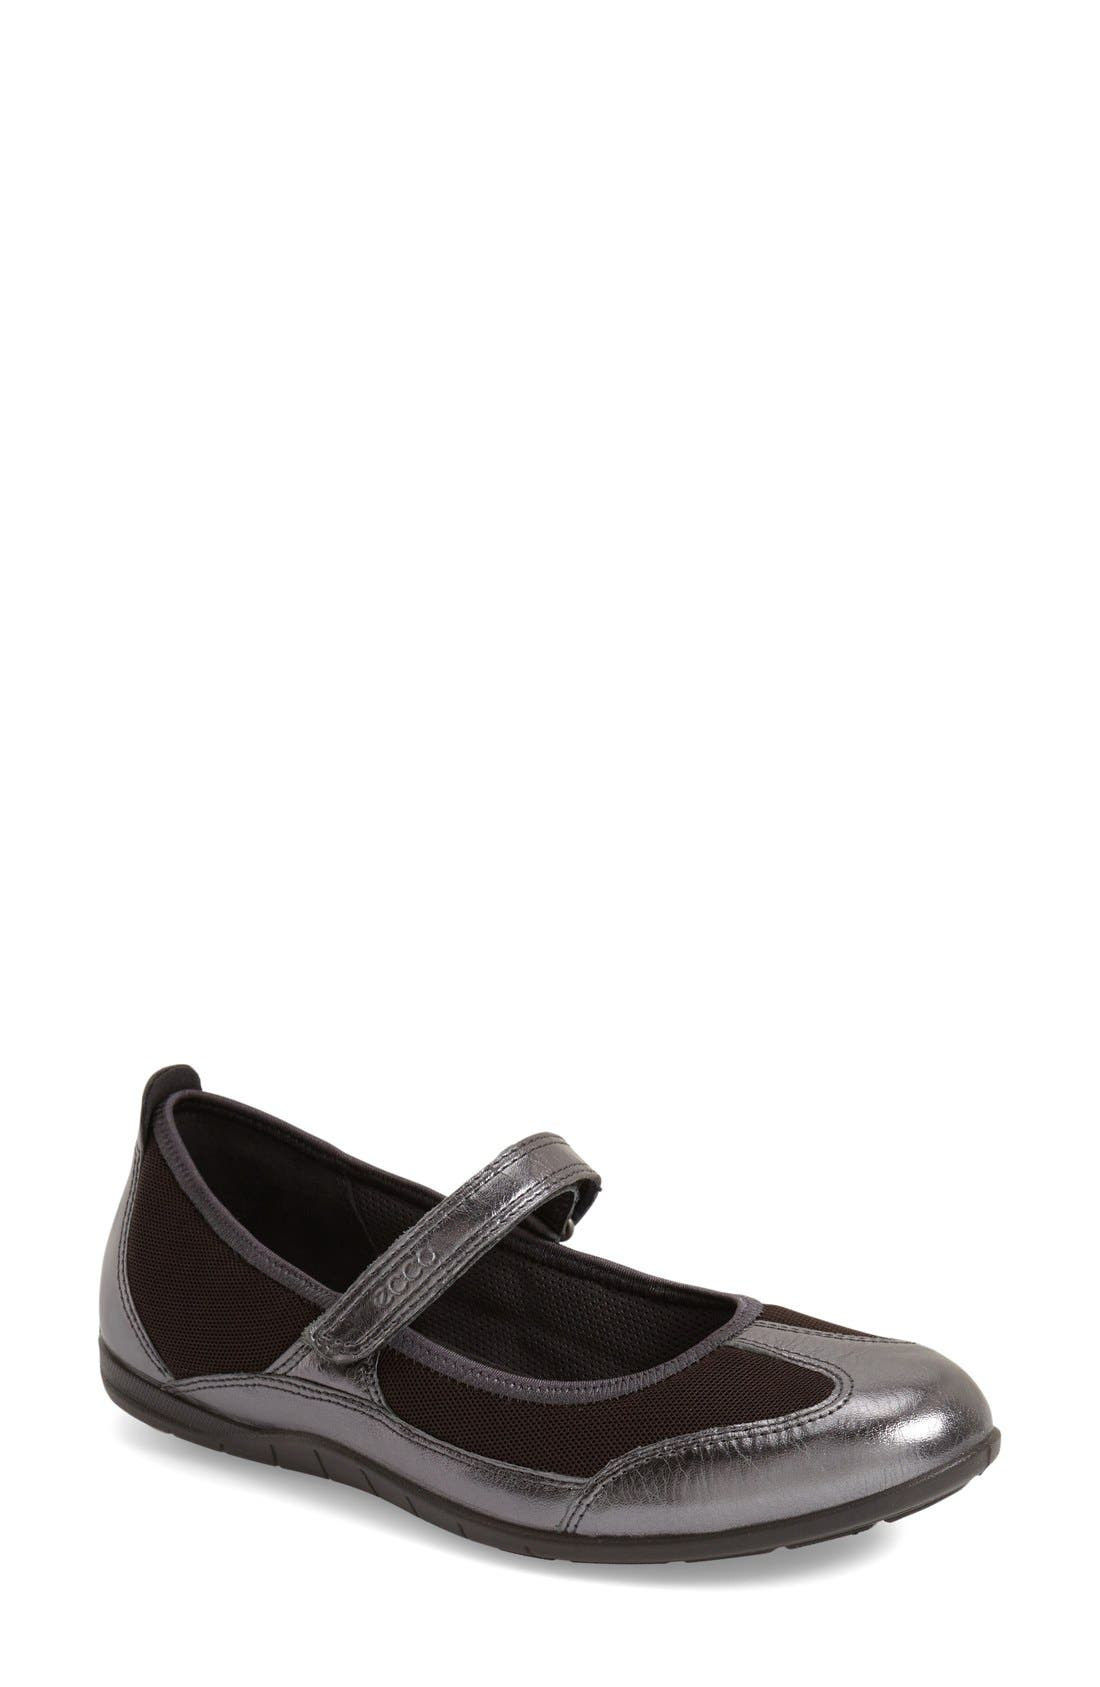 Alternate Image 1 Selected - ECCO 'Bluma' Mary Jane Flat (Women)